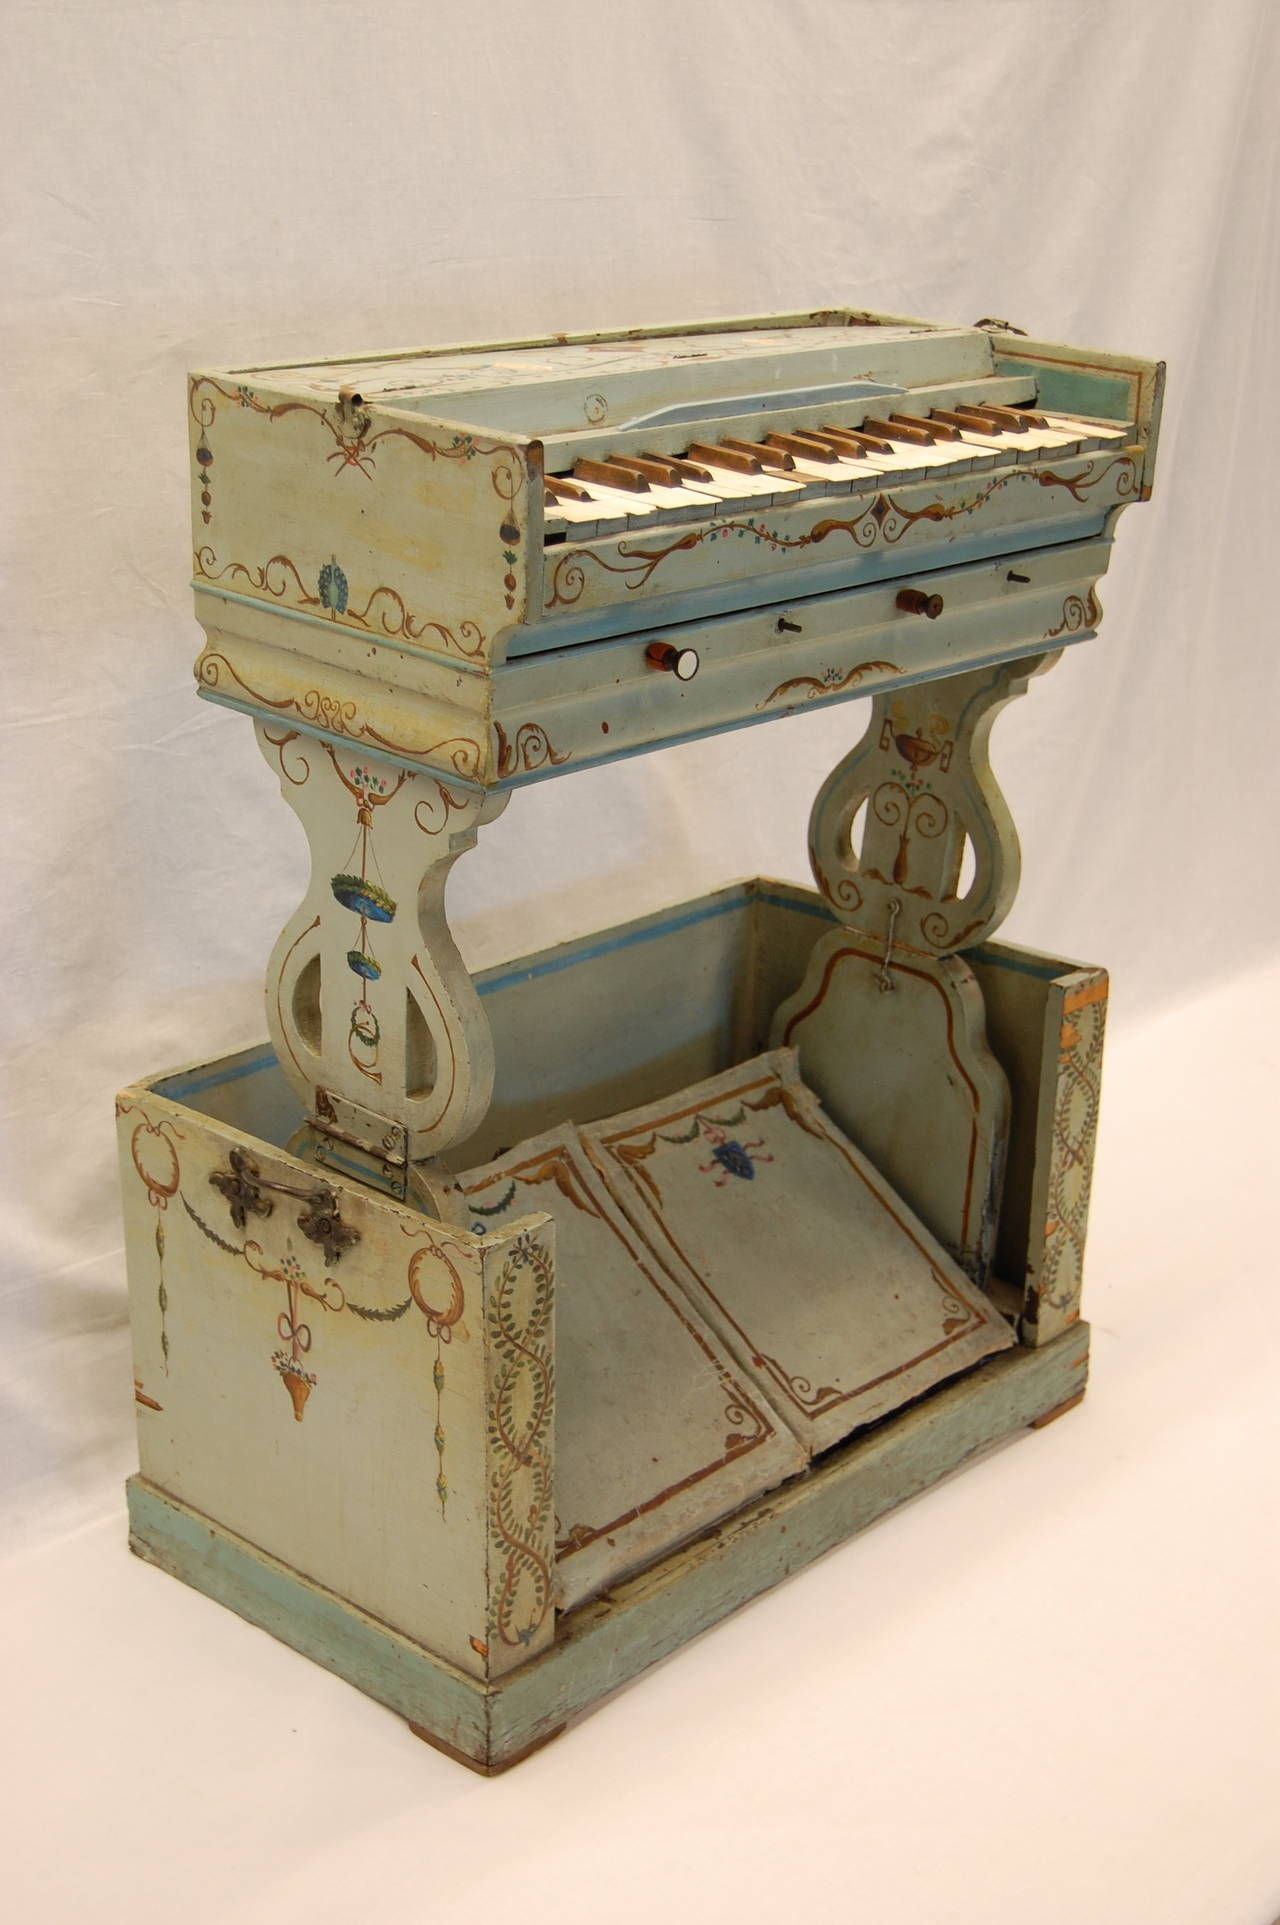 19th Century European Childs Pump Organ in Decoratively Painted Wood Case For Sale 5